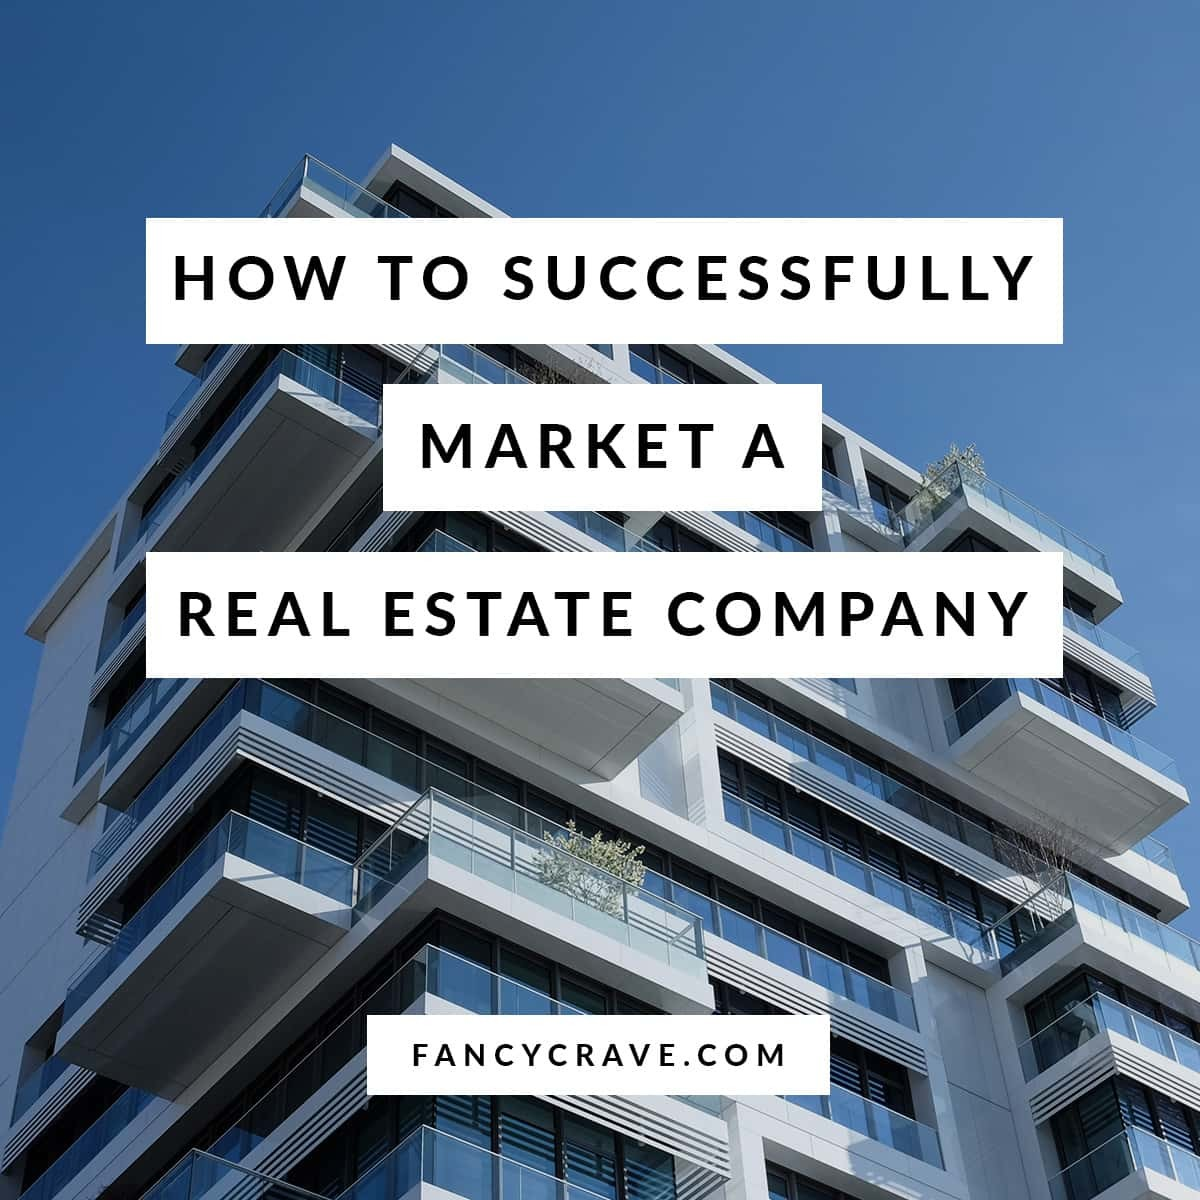 How to Successfully Market a Real Estate Company